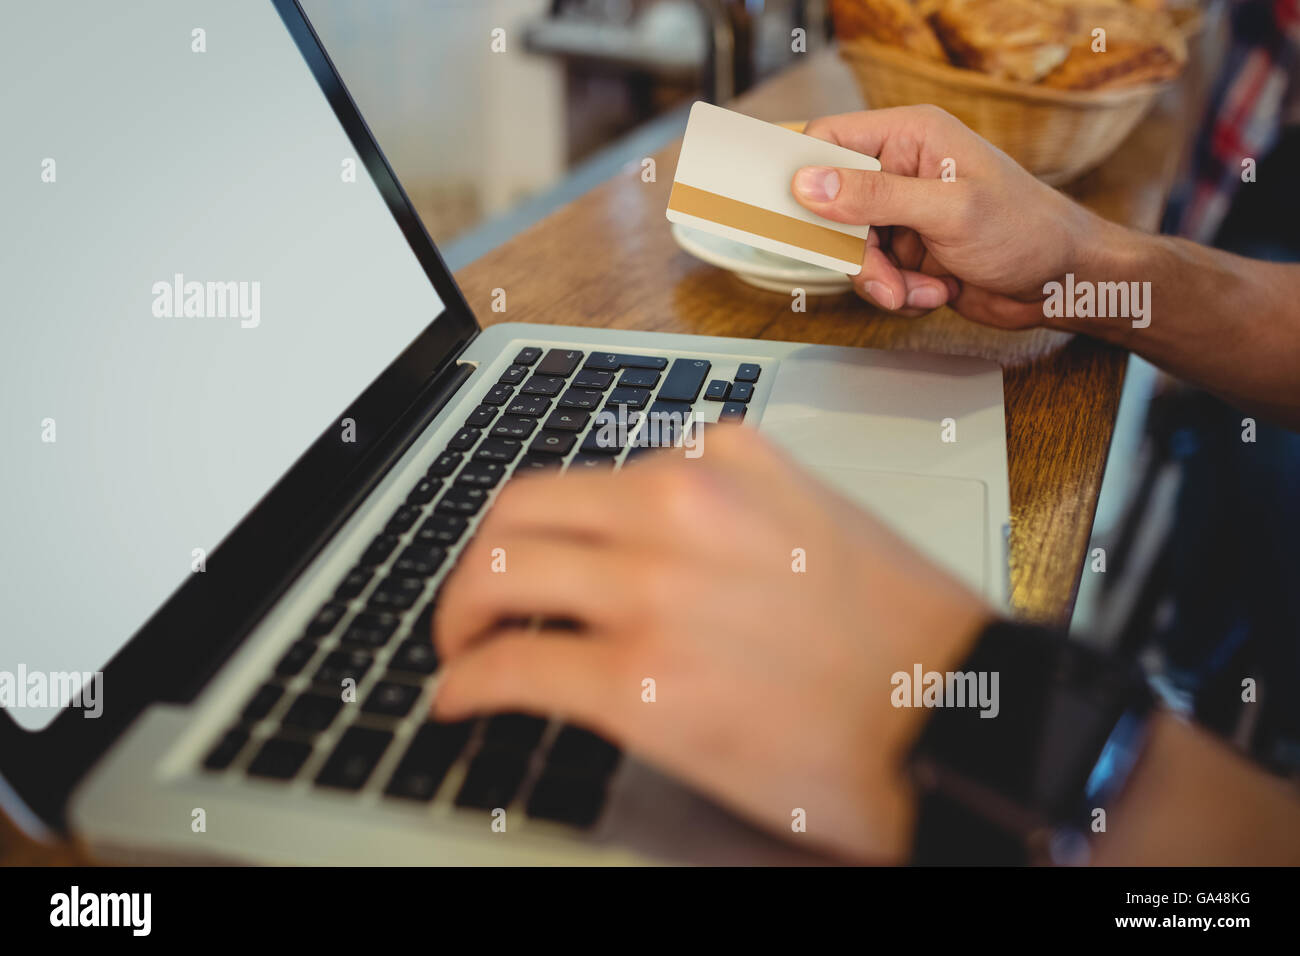 Close-up of customer spending money on online at cafe - Stock Image